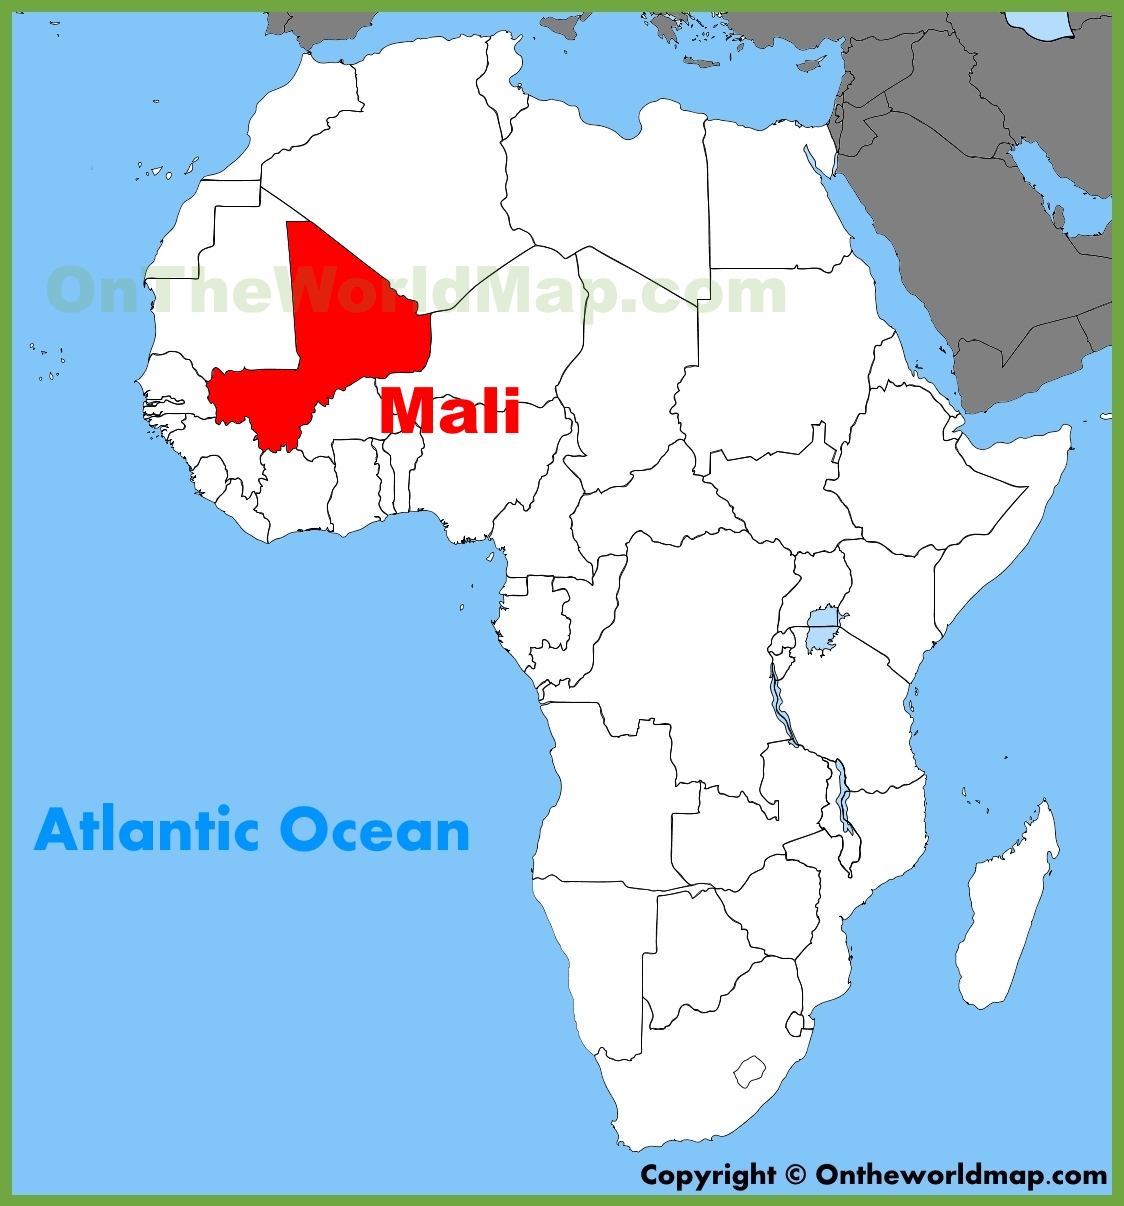 Mali Location On World Map Mali location on the Africa map Mali Location On World Map